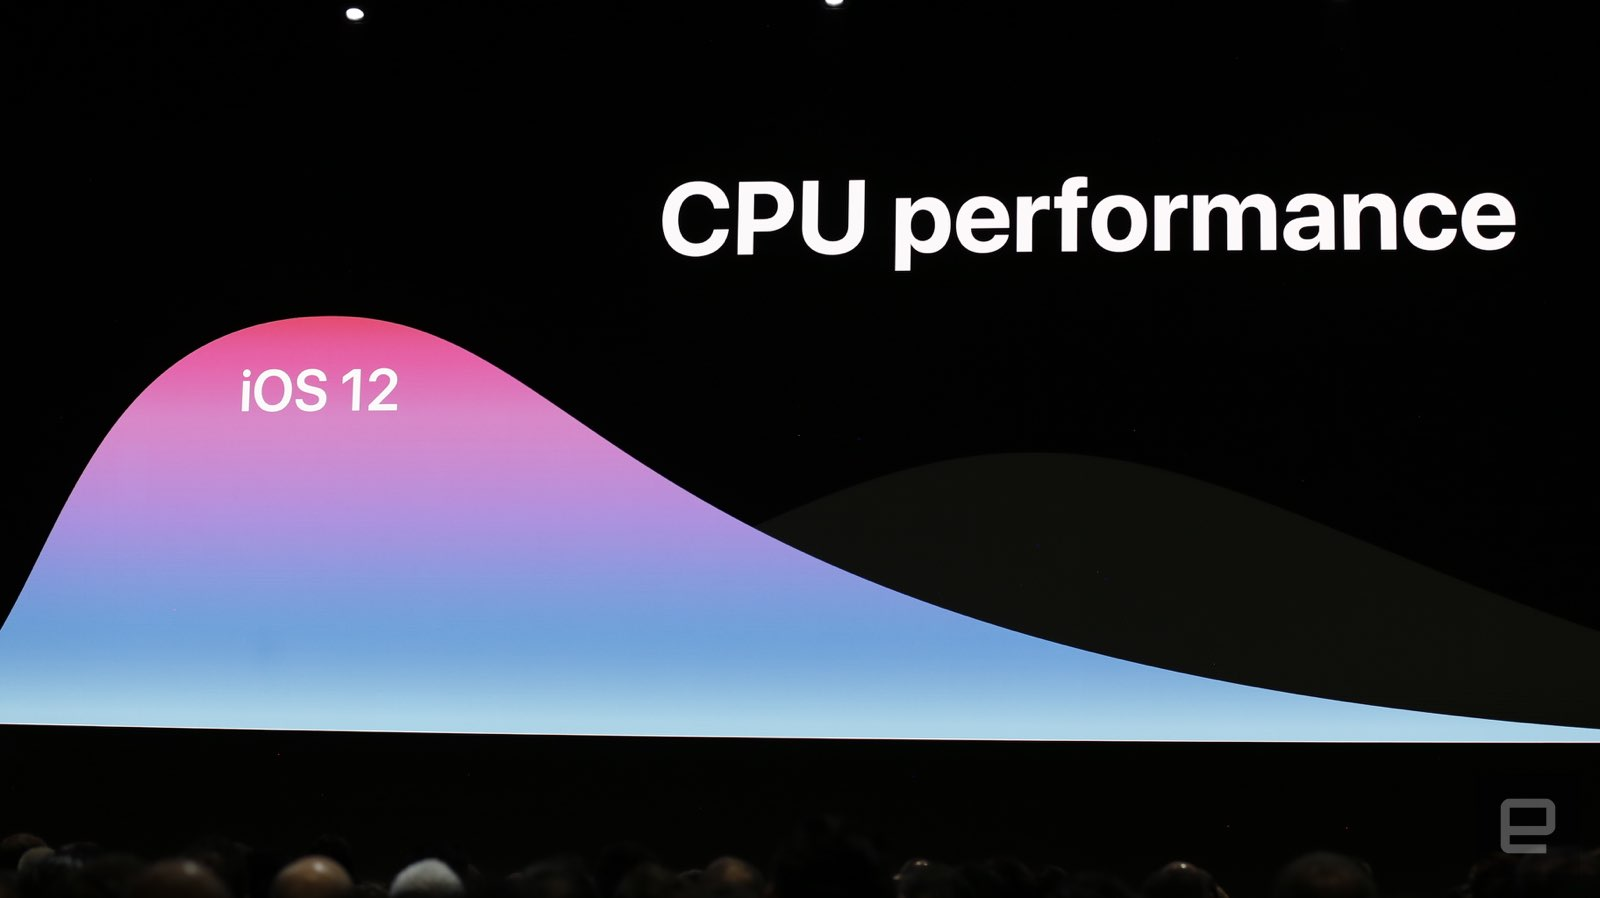 iOS 12 performance